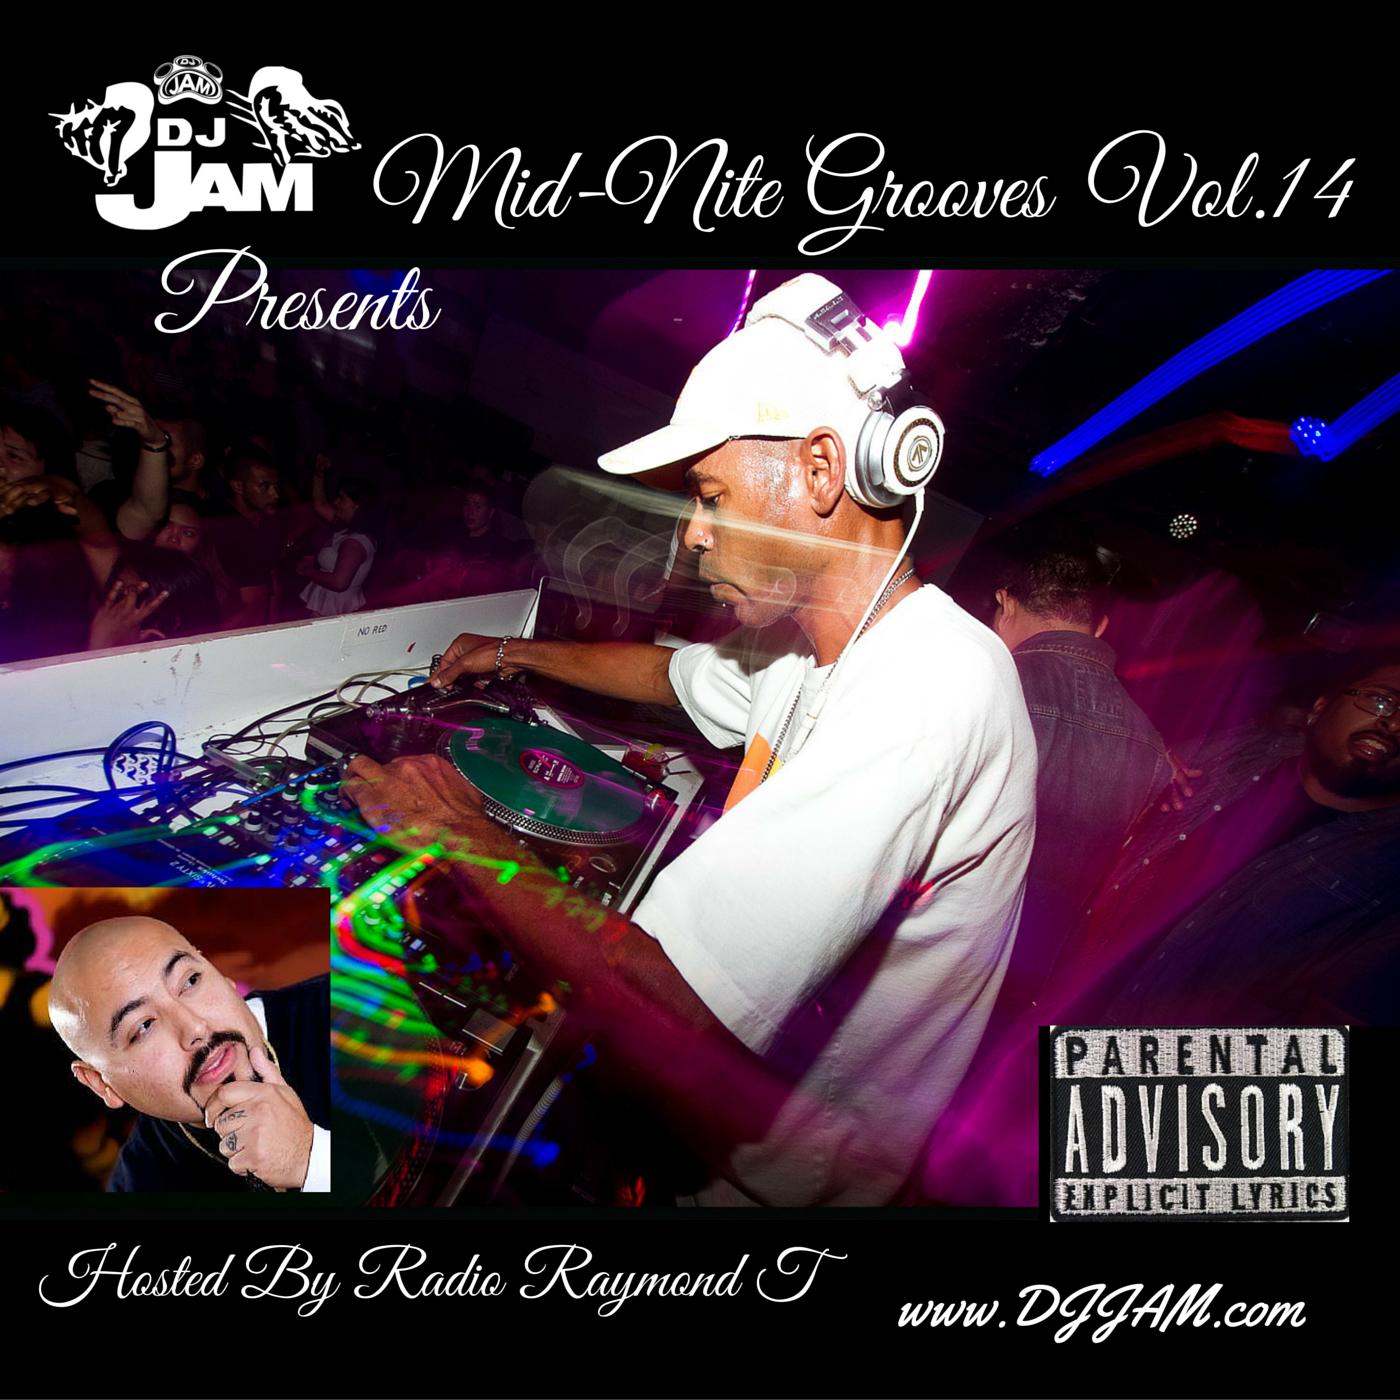 """""""NEW MUSIC"""" Mid-Nite Grooves Vol.14 Hosted by Radio Raymond T. Listen Now!!!"""